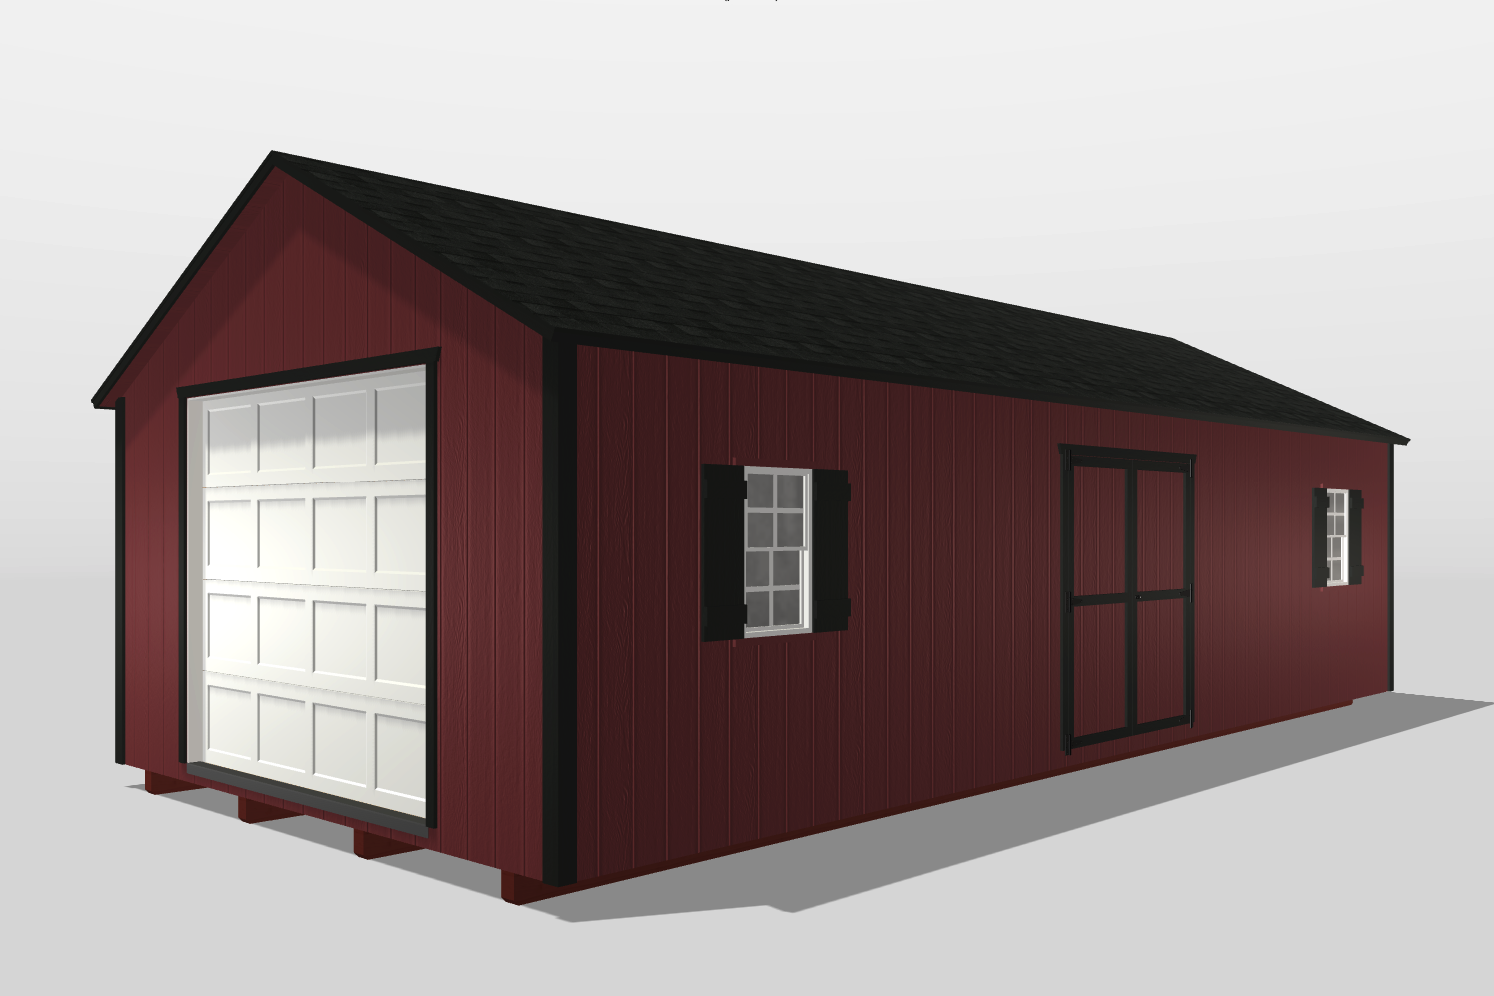 14x32 garage shed for sale vidalia ga